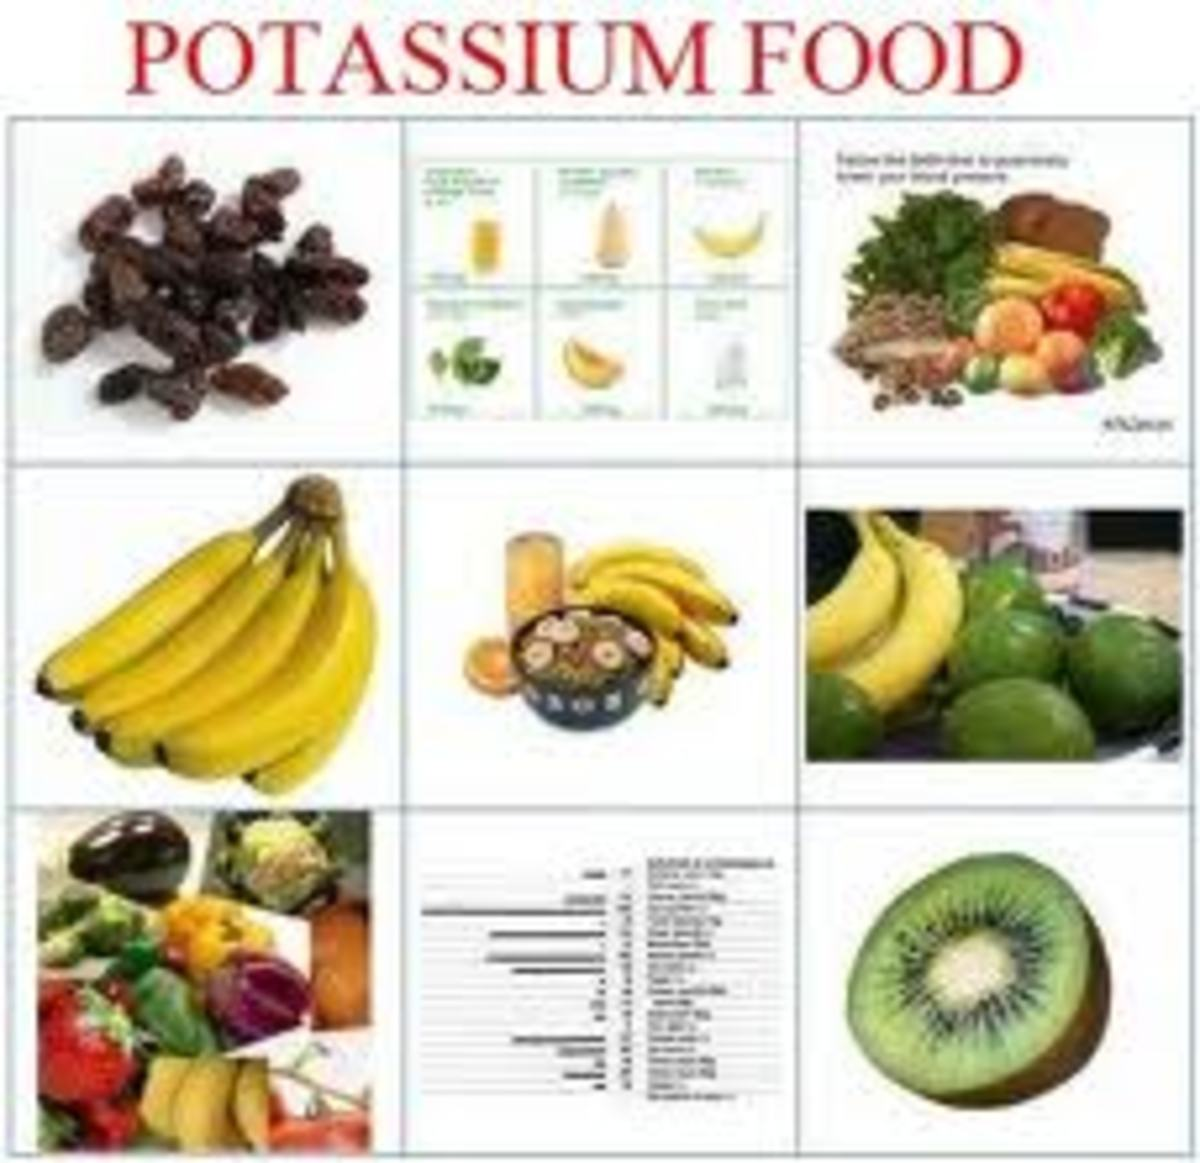 Avoid potassium rich foods while taking aldactone